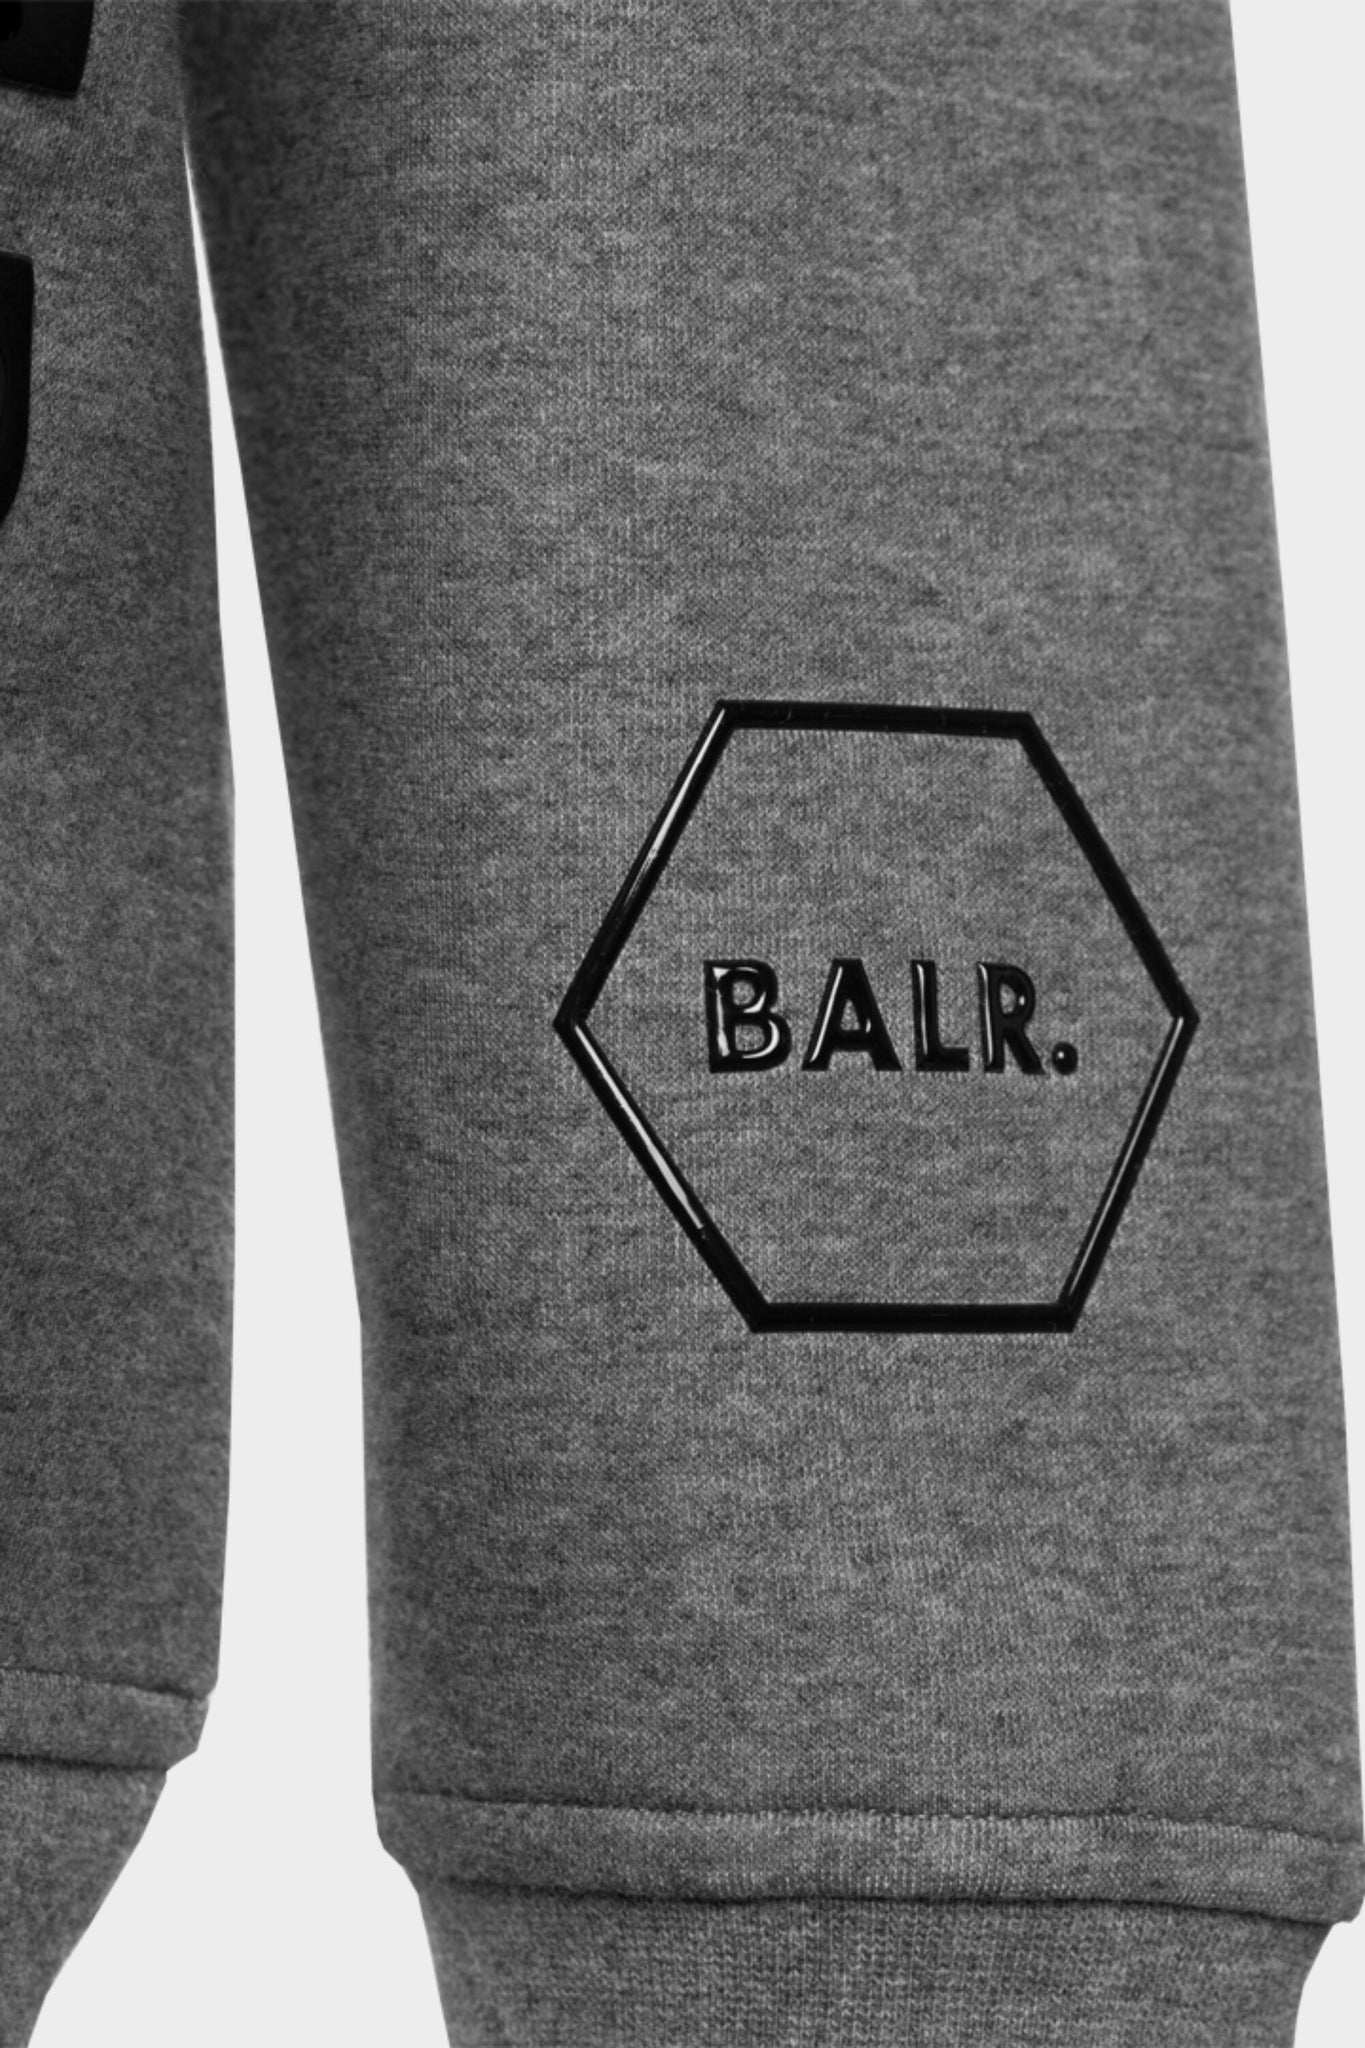 CC BALR. Straight Crew Neck Dk Grey Heather